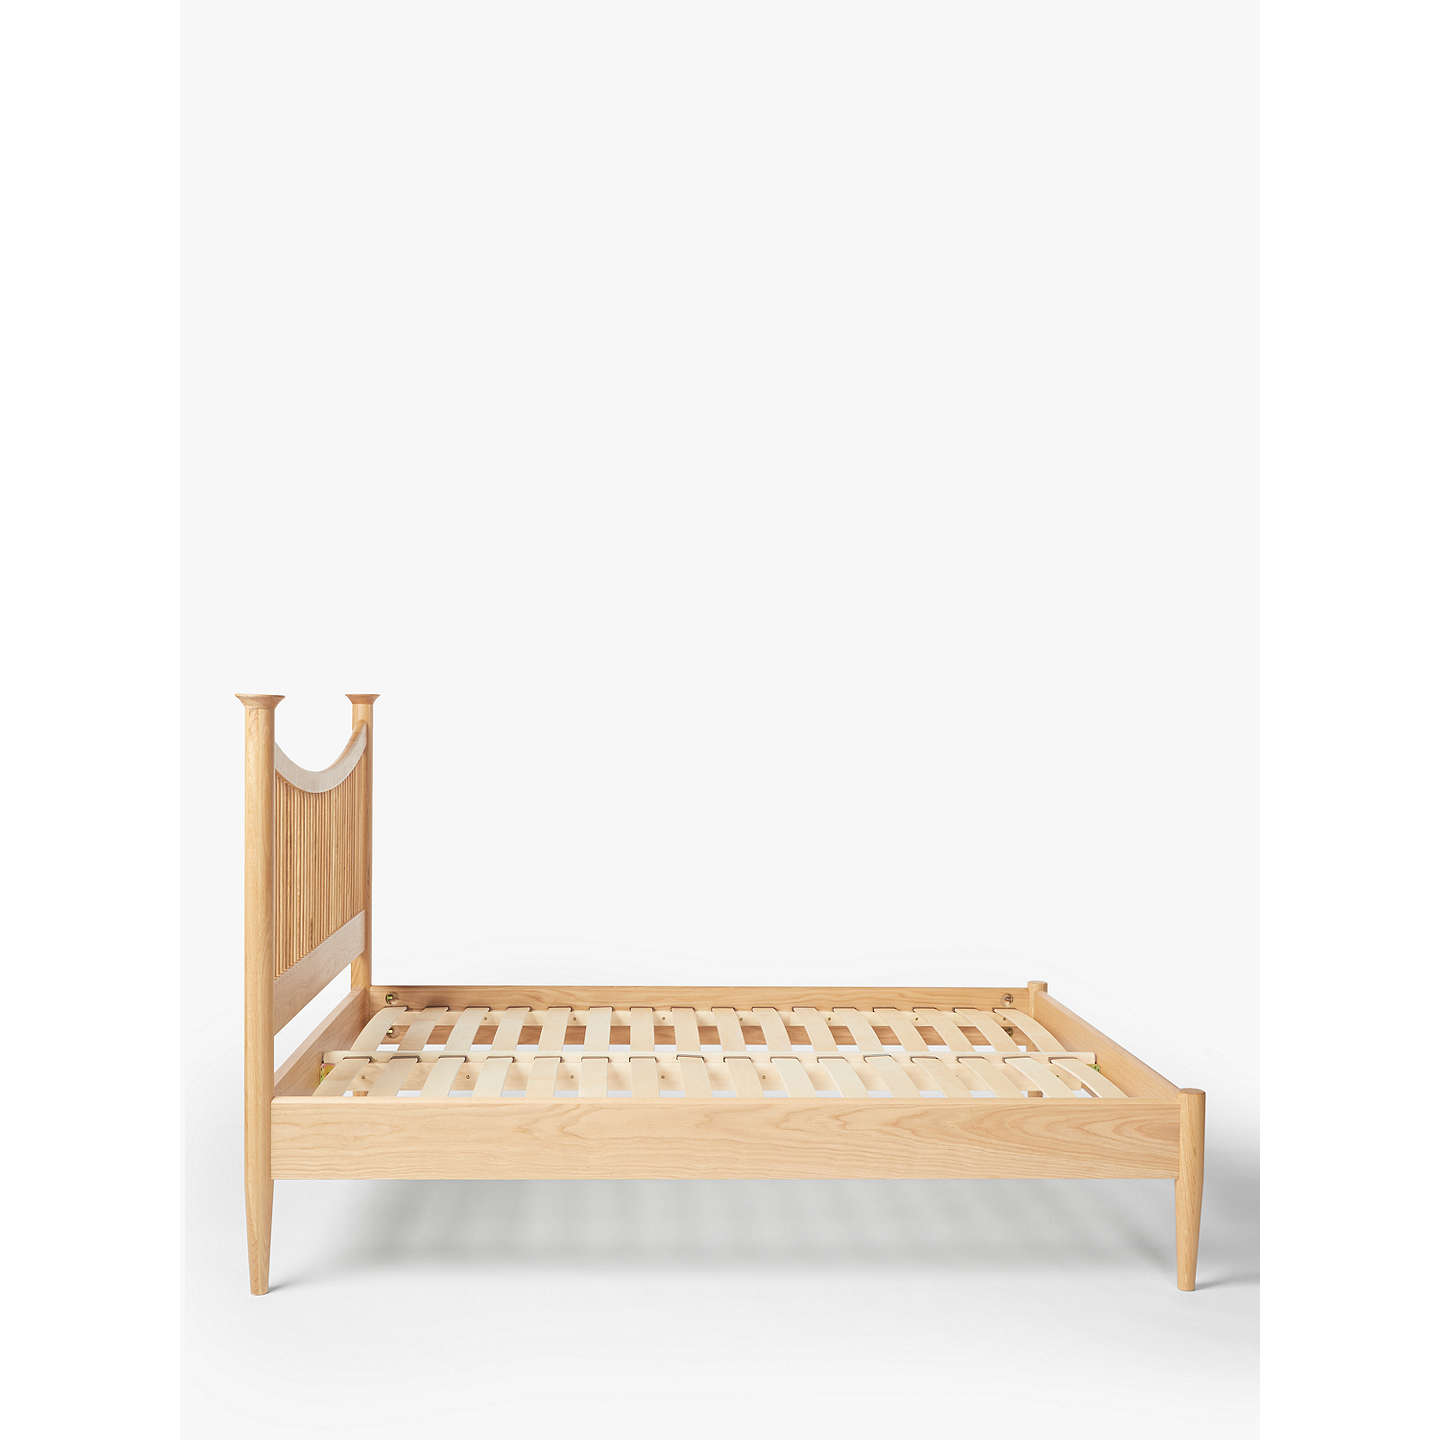 John lewis essence bed frame oak king size at john lewis for John lewis chinese furniture